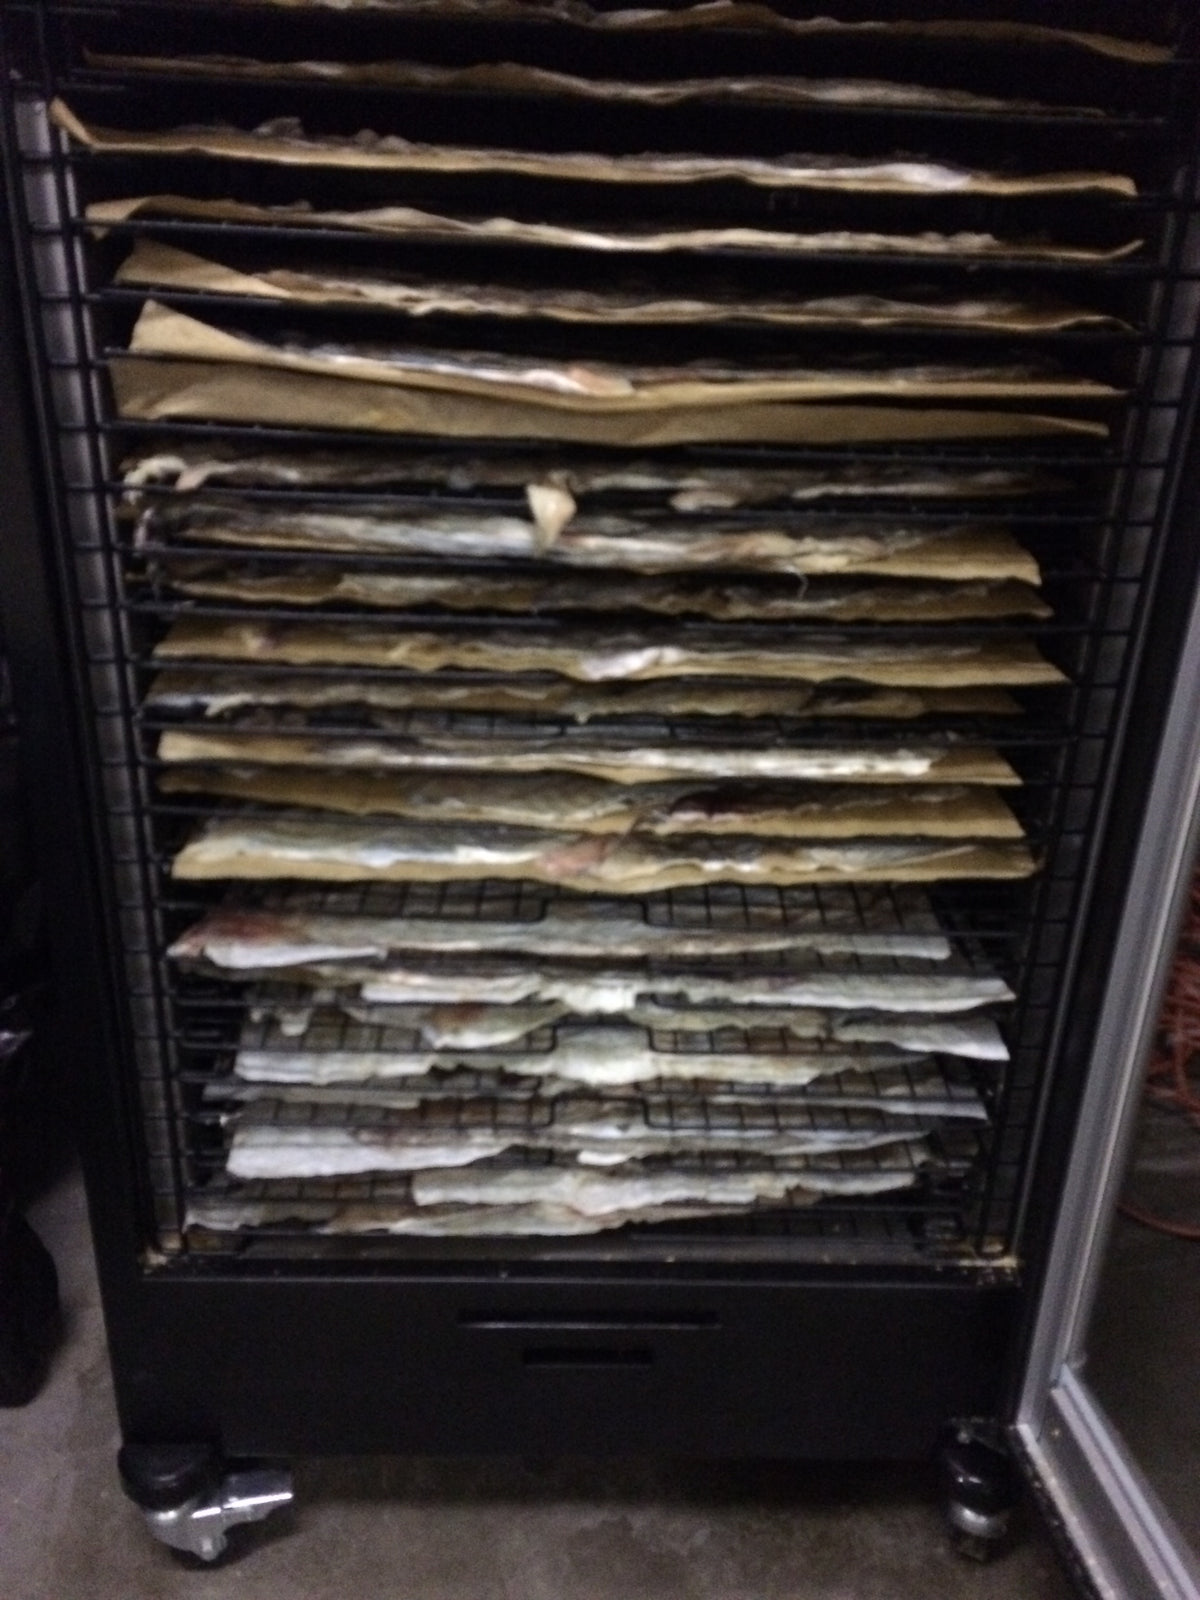 Wild Alaska cod skins ready for drying.